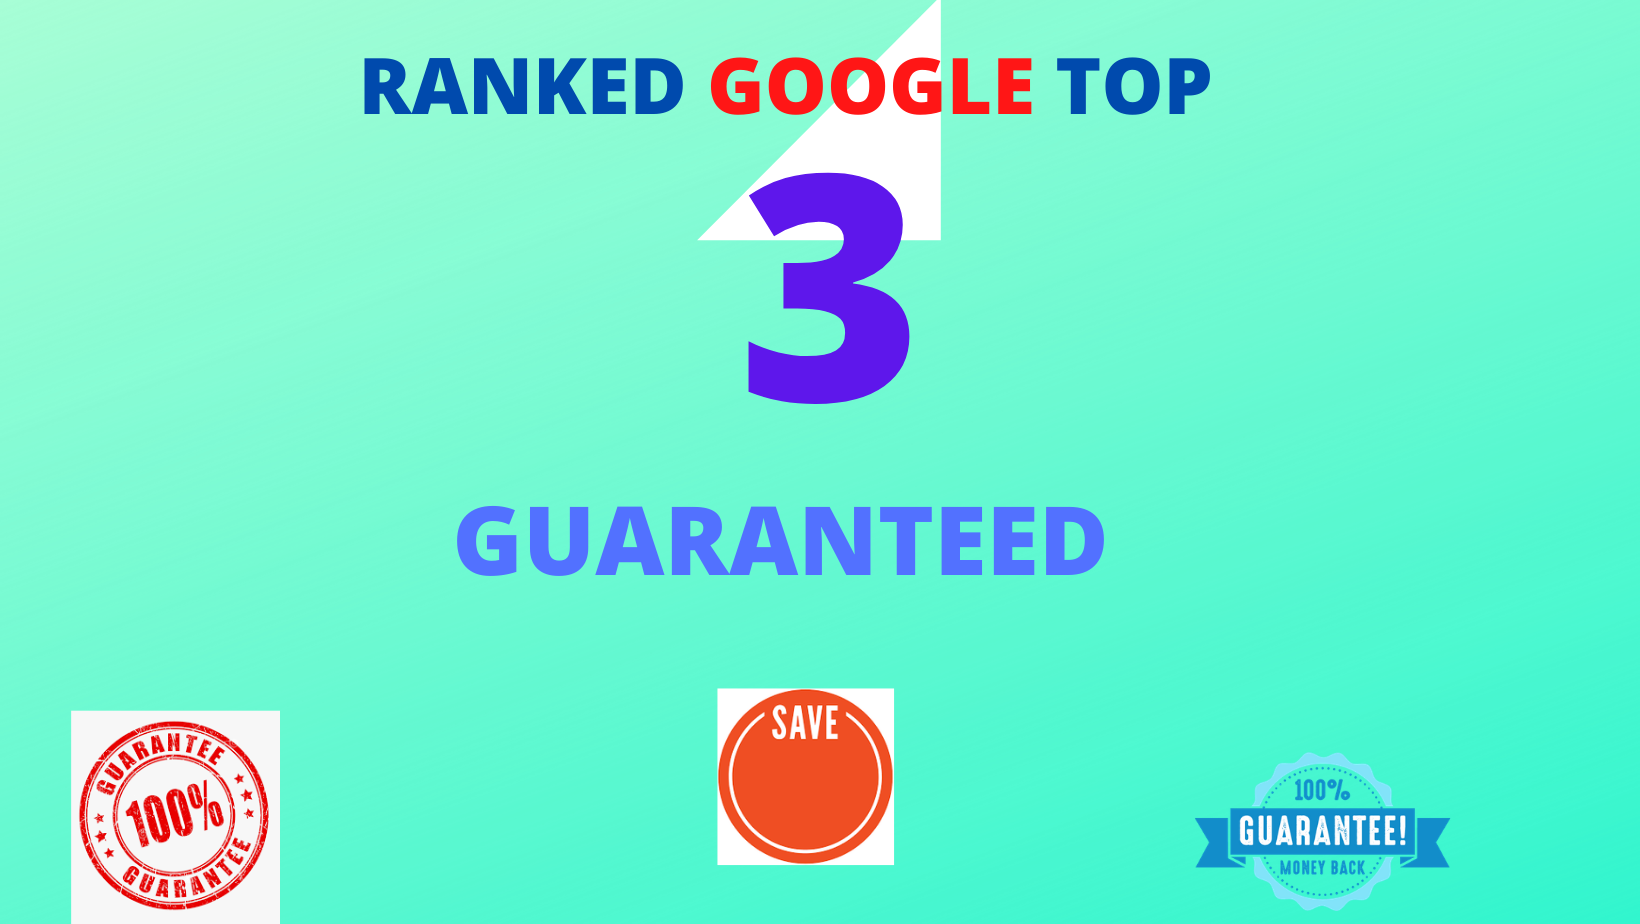 GOOGLE RANKED TOP 3 GUARANTEED - March Update 2021